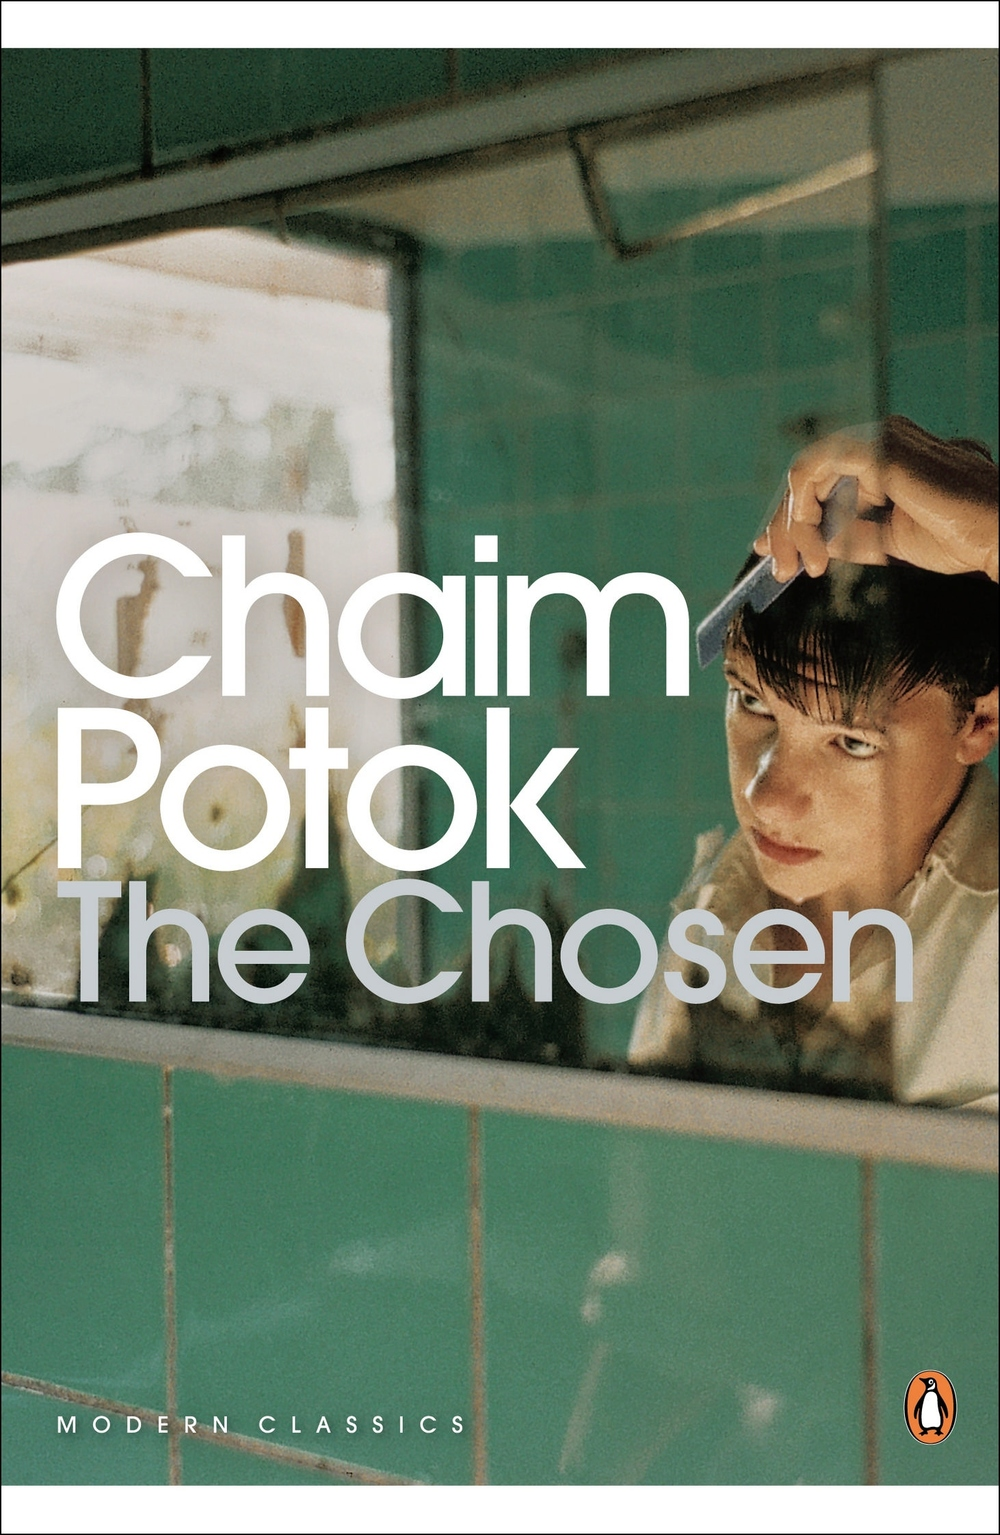 The Chosen by Chaim Potok.jpg